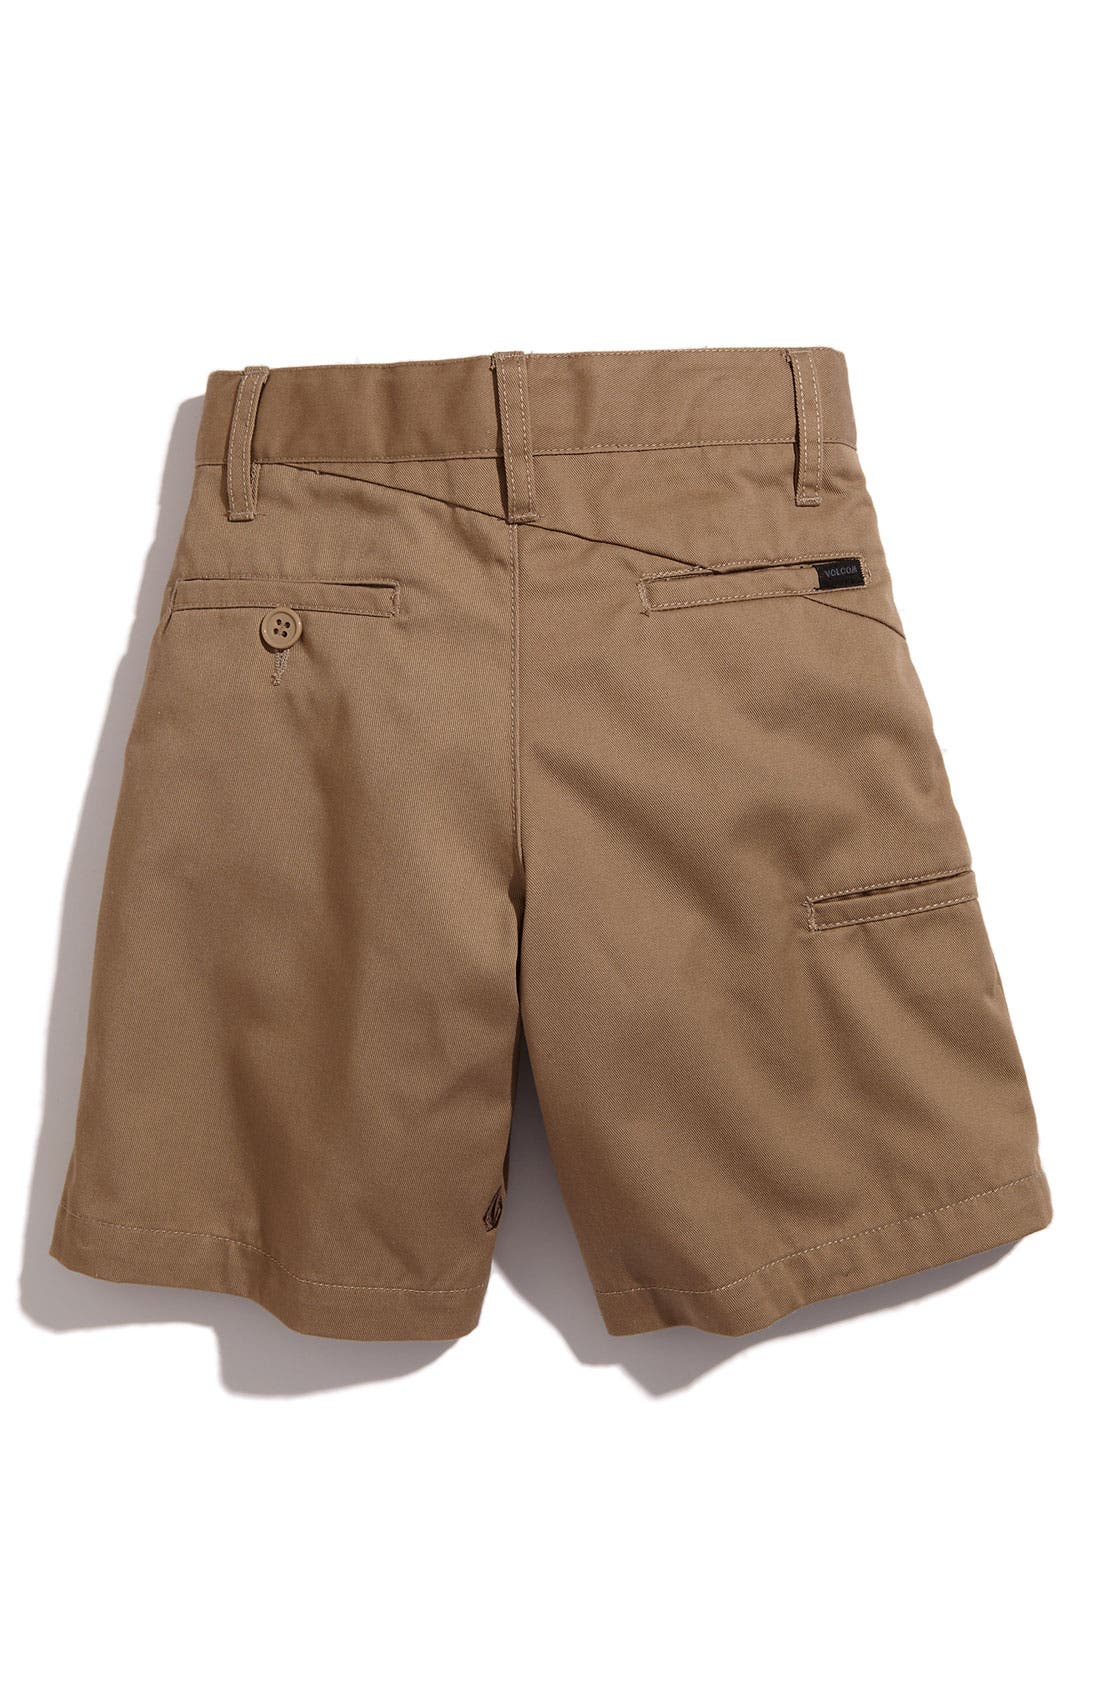 Alternate Image 2  - Volcom 'Modern' Chino Shorts (Little Boys)